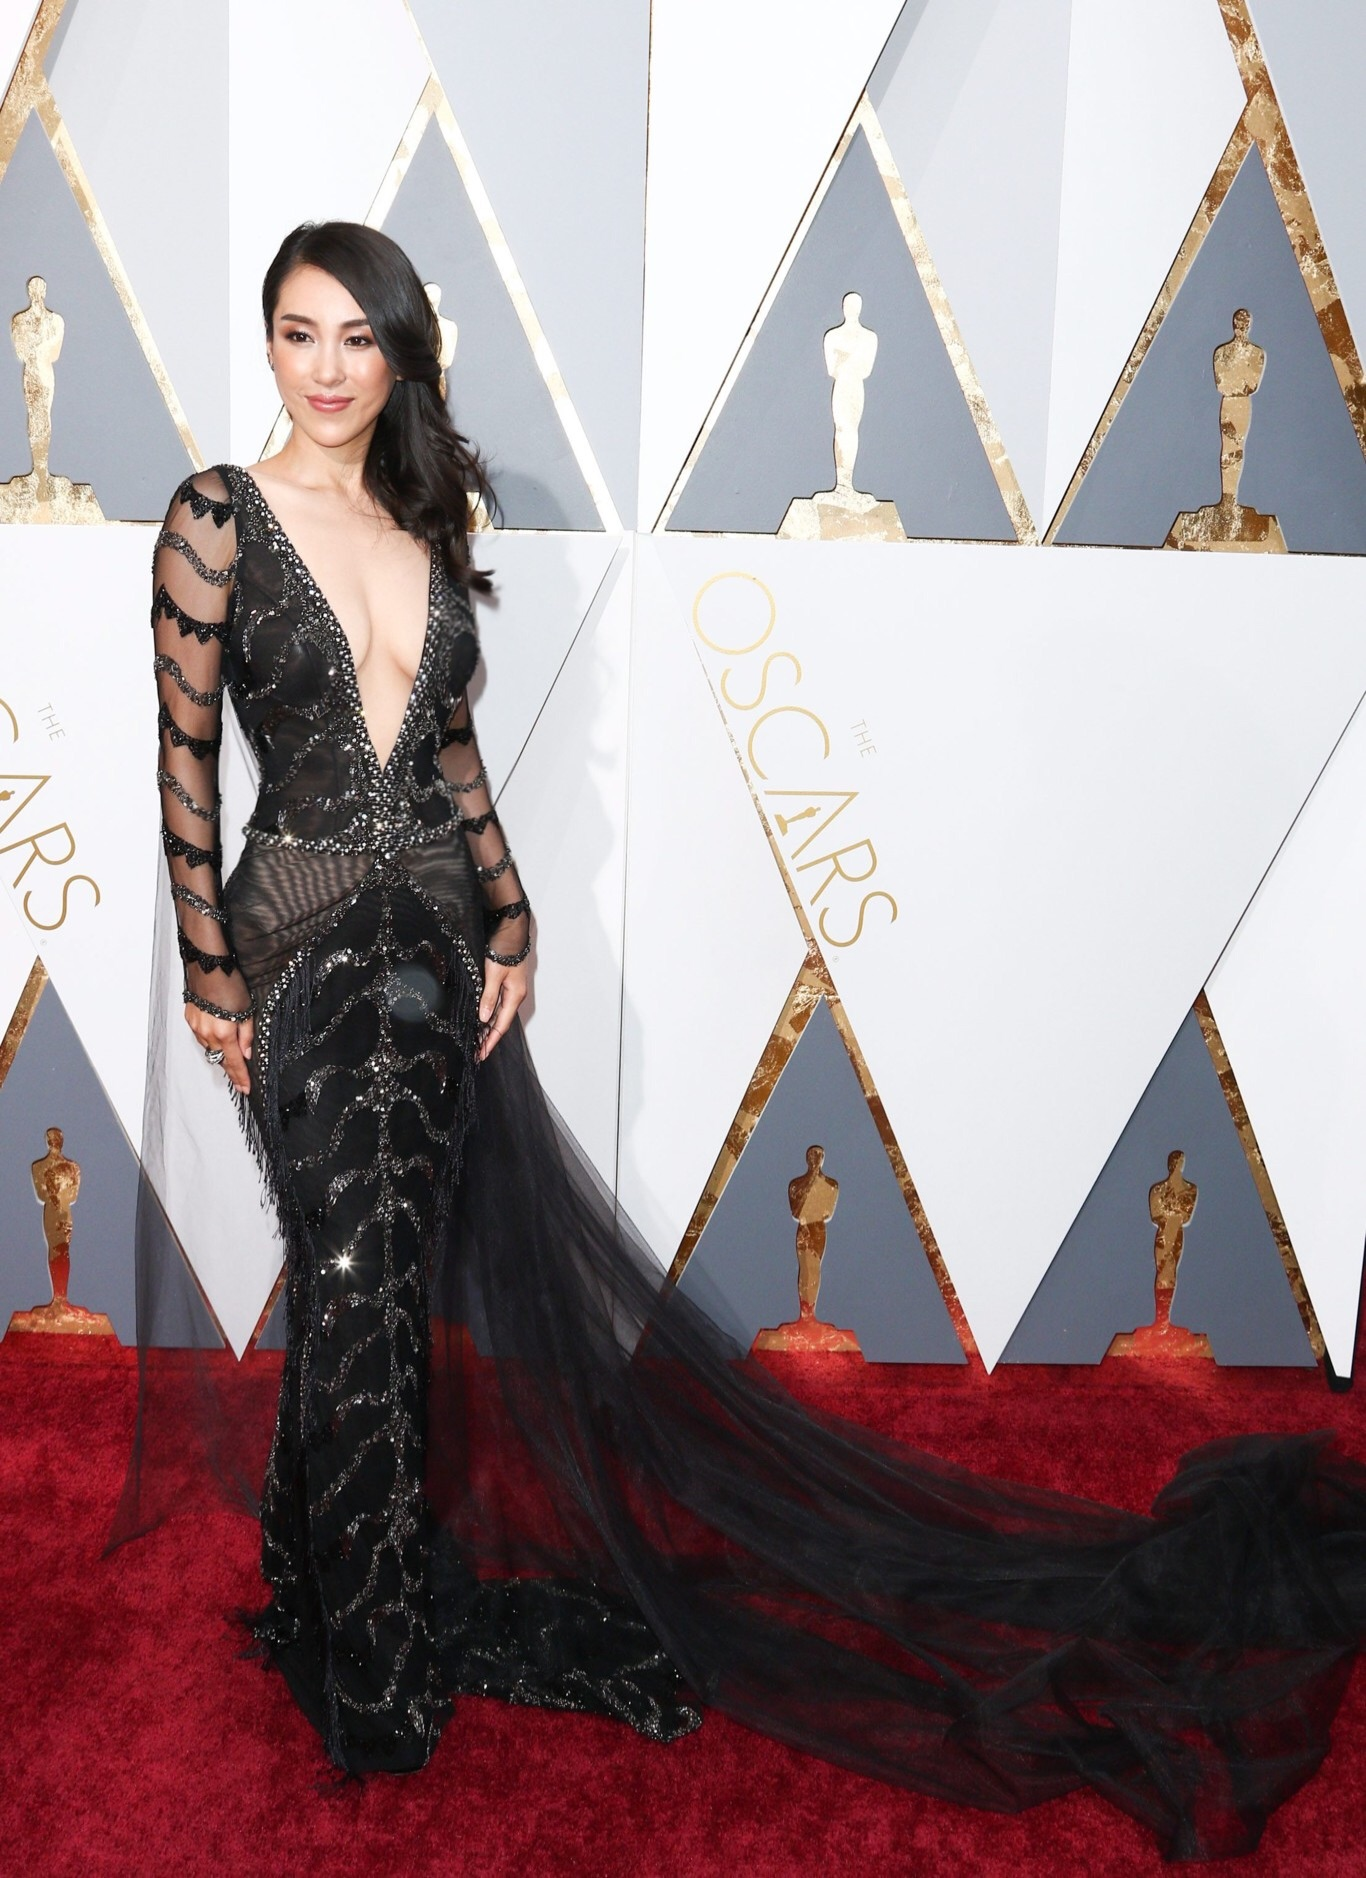 Jane Wu at the Oscars 2016